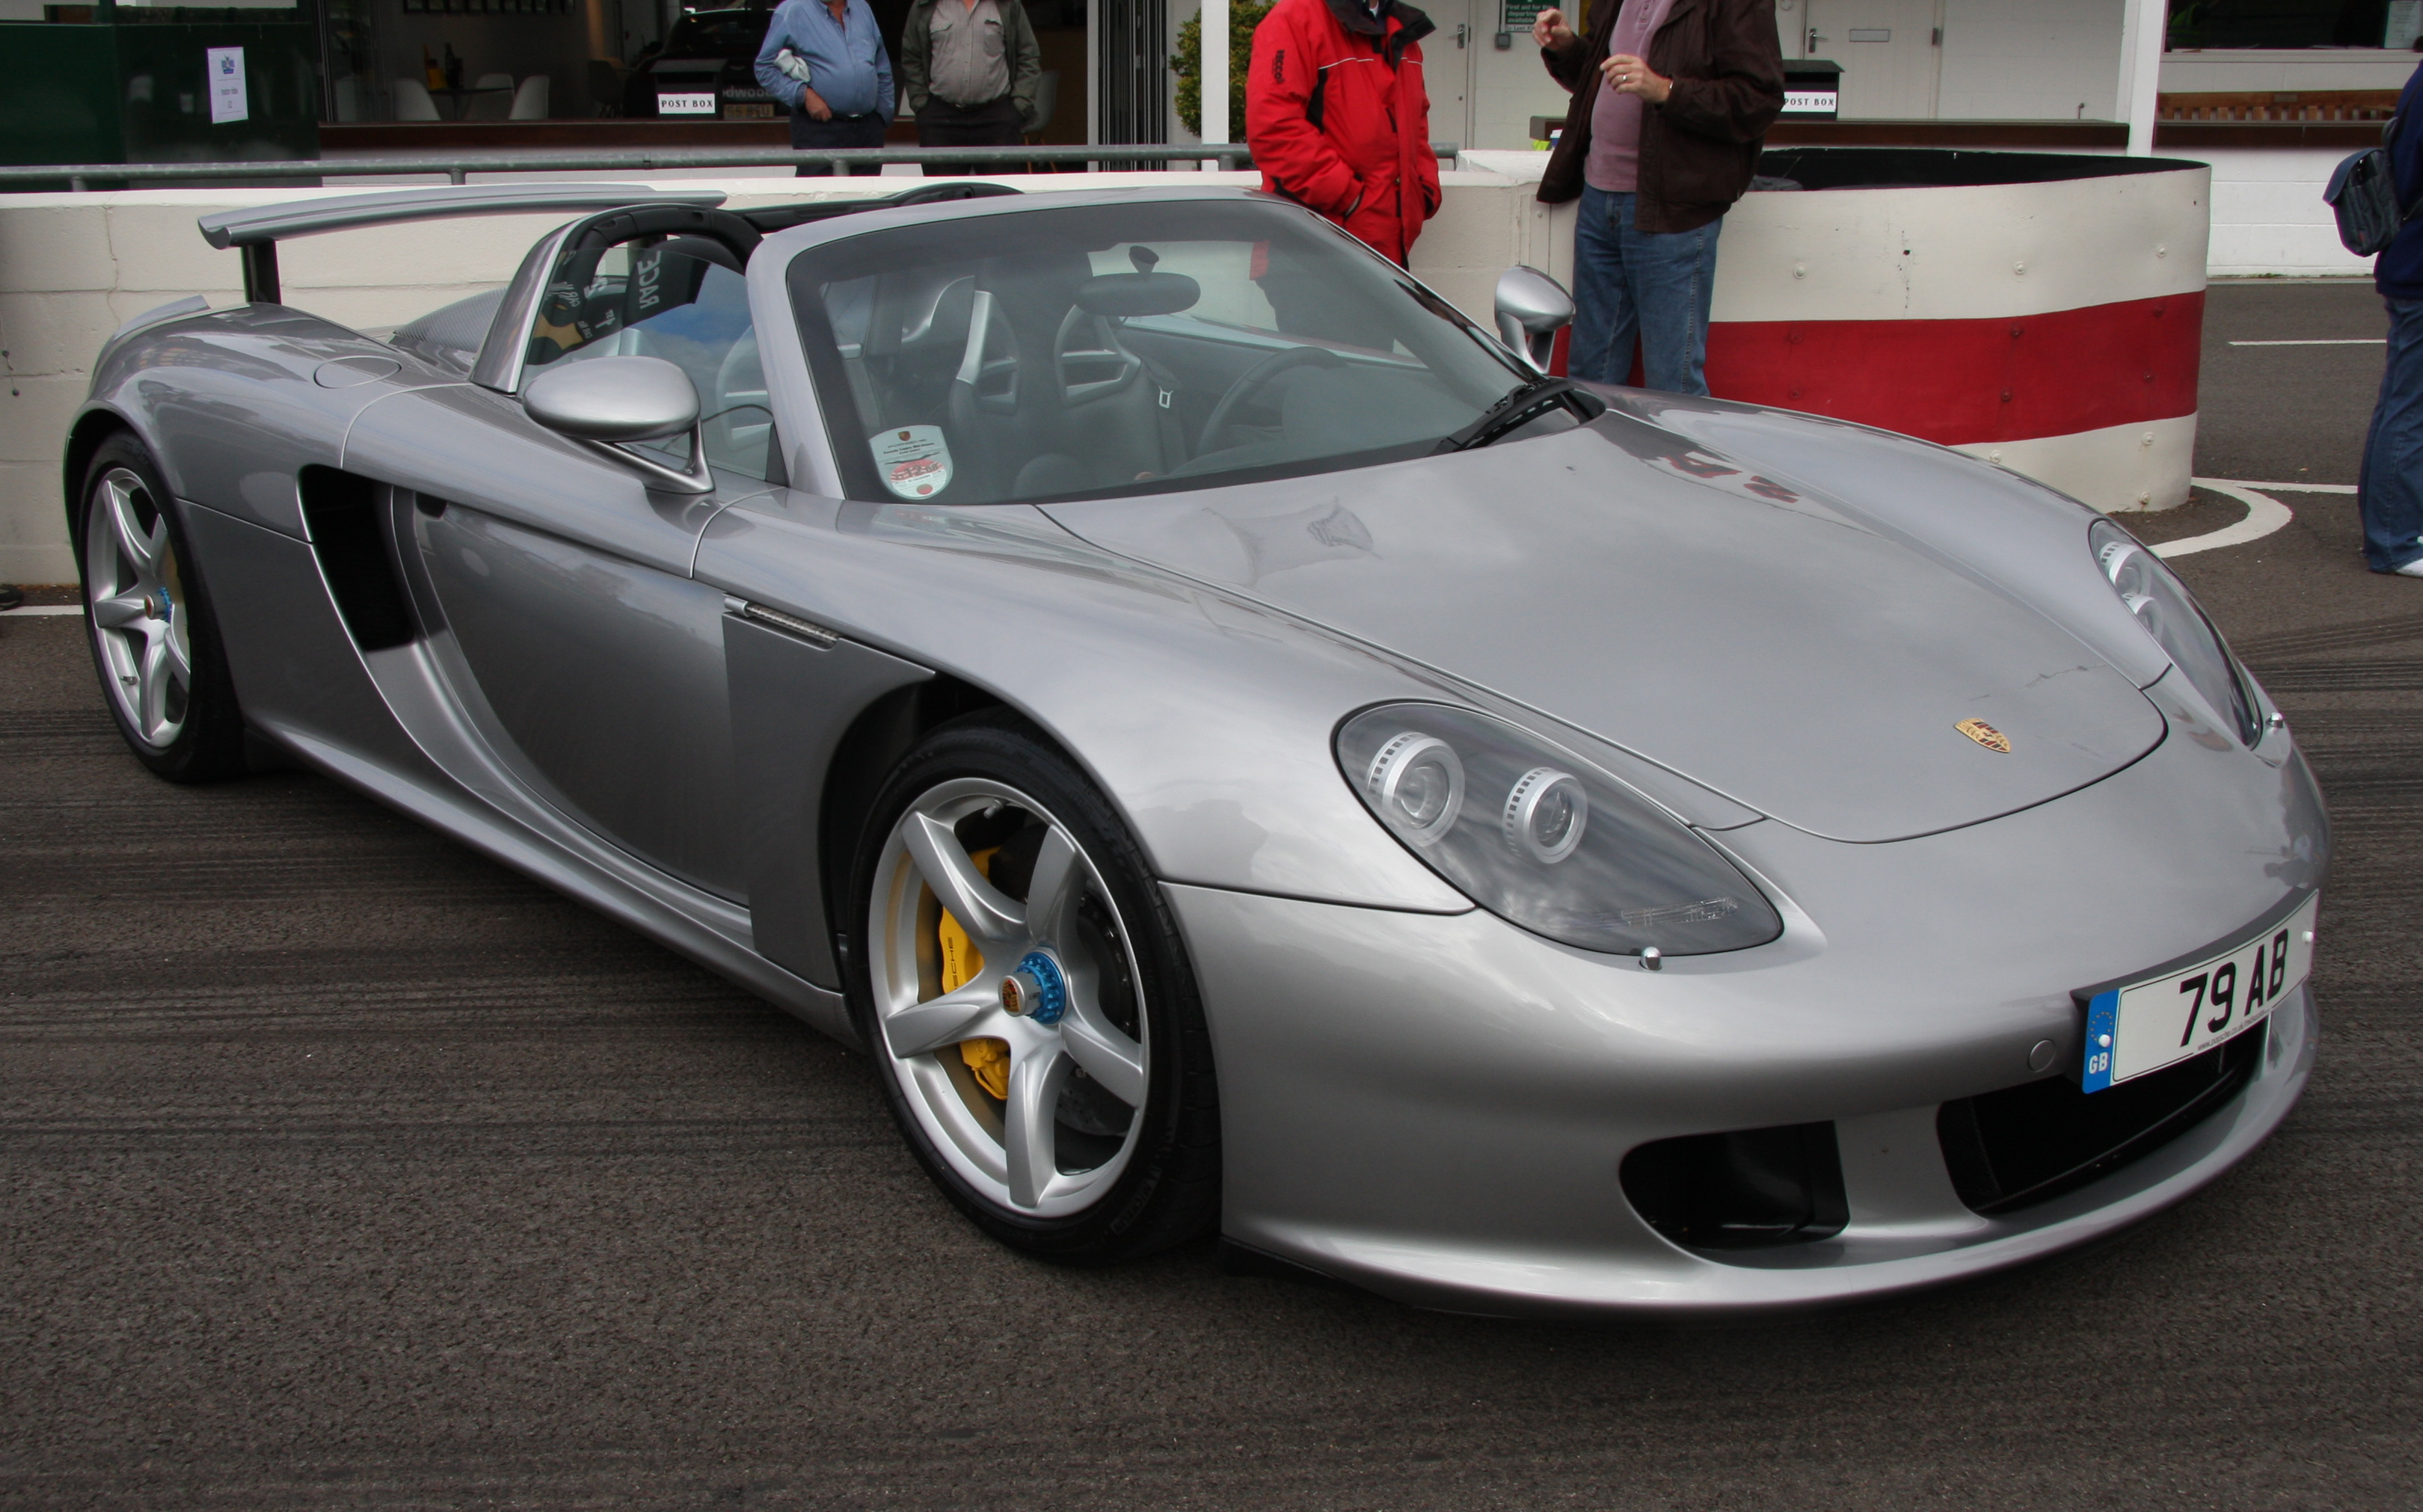 Porsche Carrera gt For Sale Porsche Carrera gt